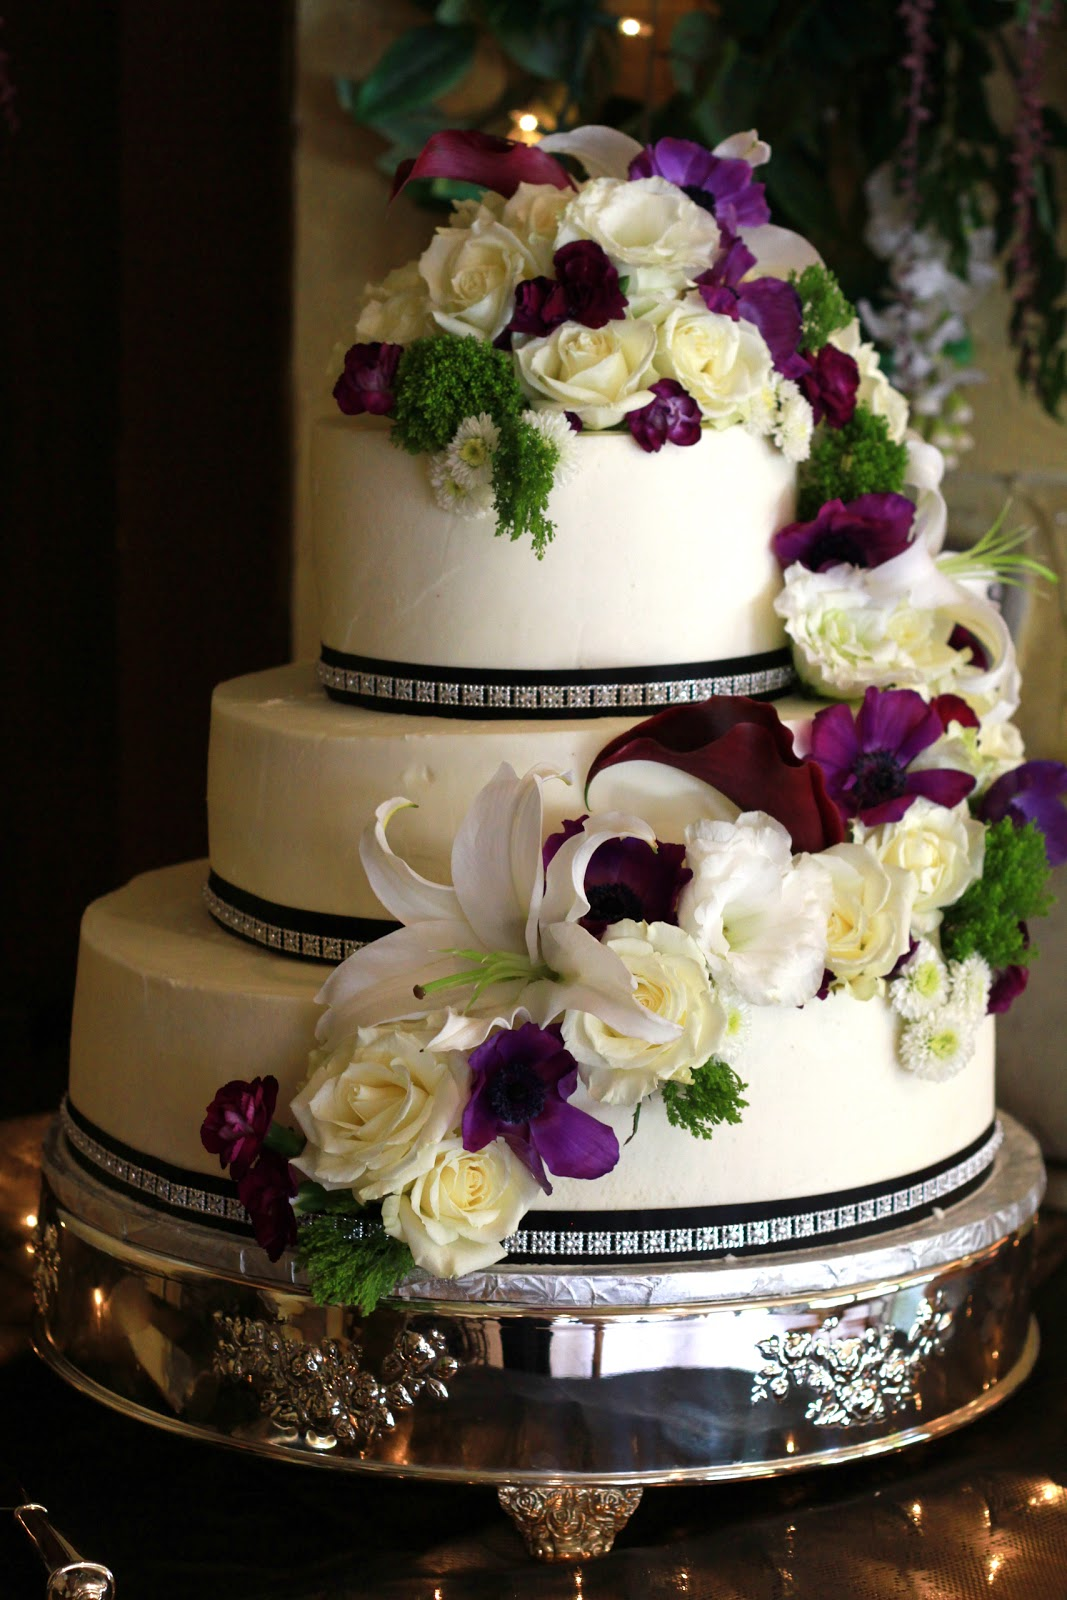 Decorating A Cake With Edible Flowers : Wedding Cake Frosting - Wedding Plan Ideas